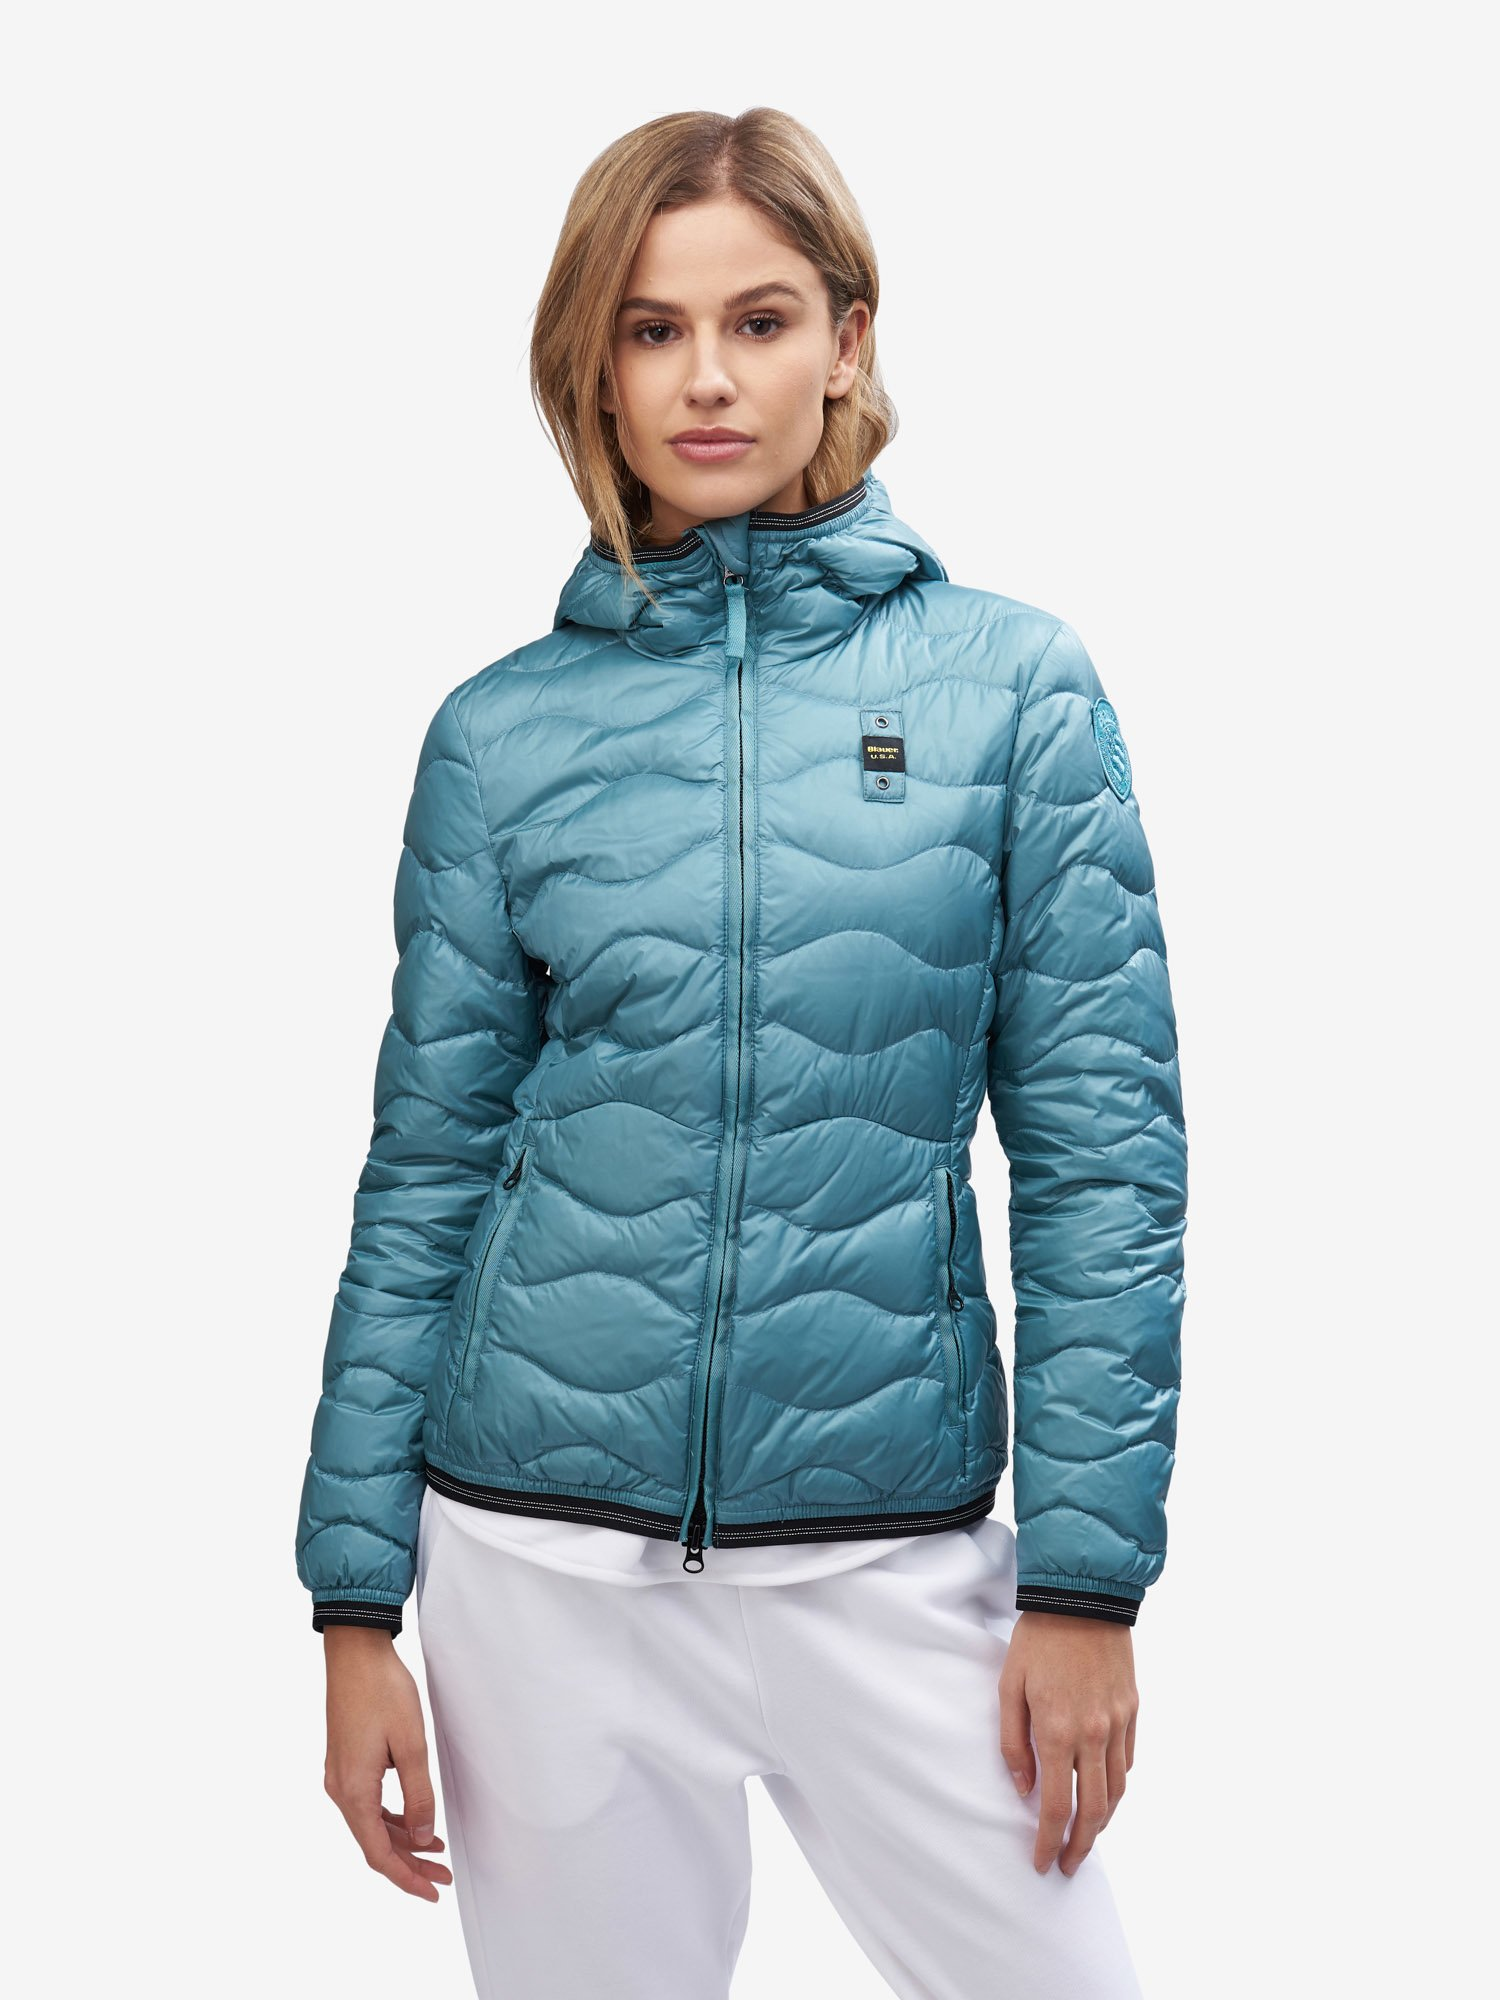 FERGUSON WAVE-QUILTED DOWN JACKET - Blauer